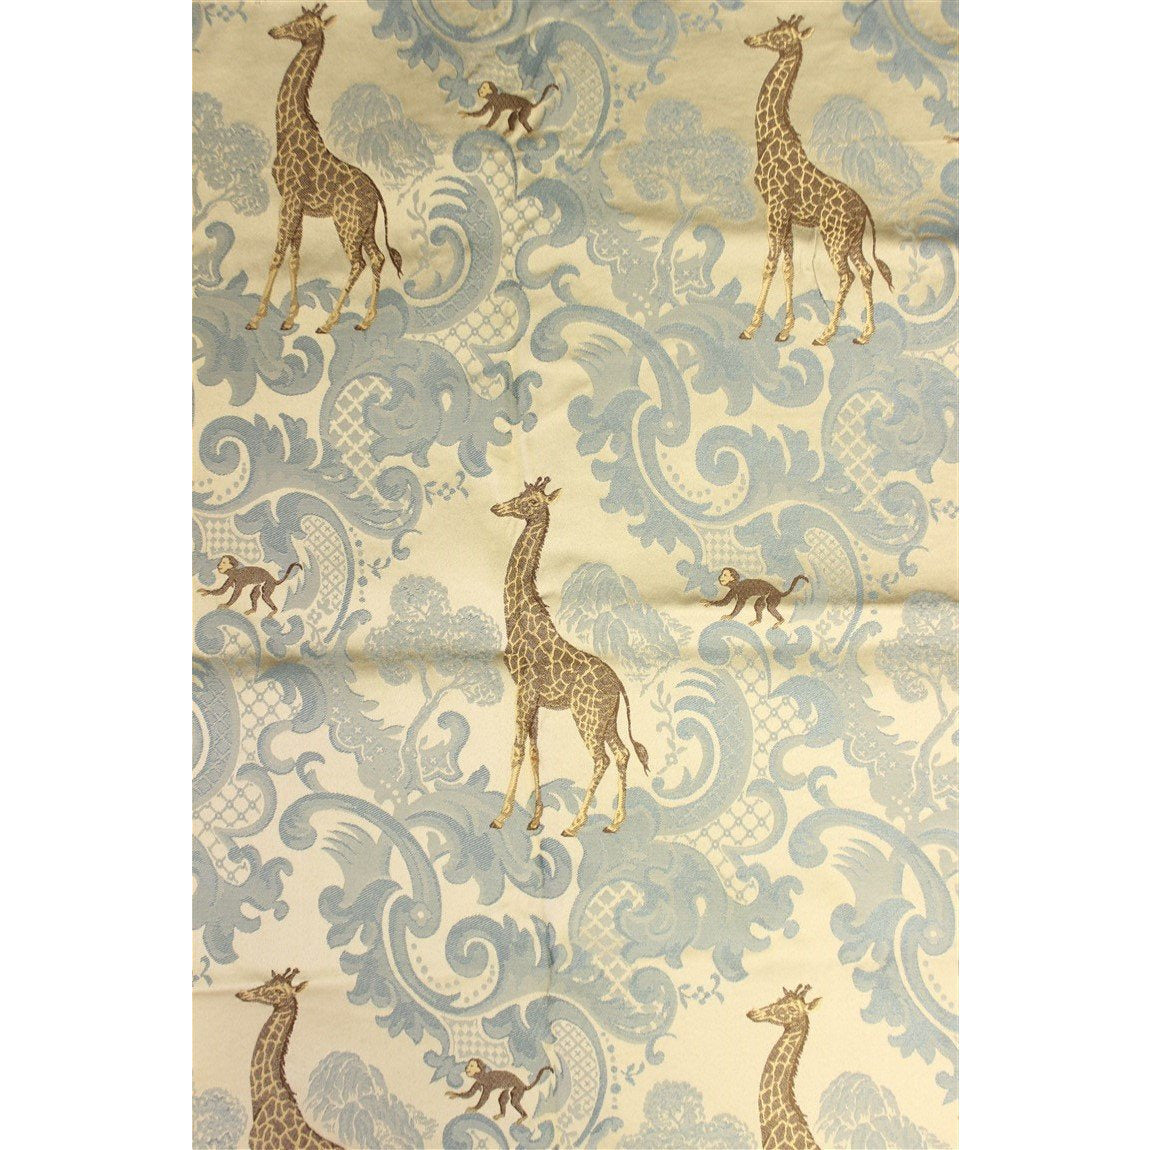 Silk Twill Fabric w/ Embroidered Giraffes & Monkeys